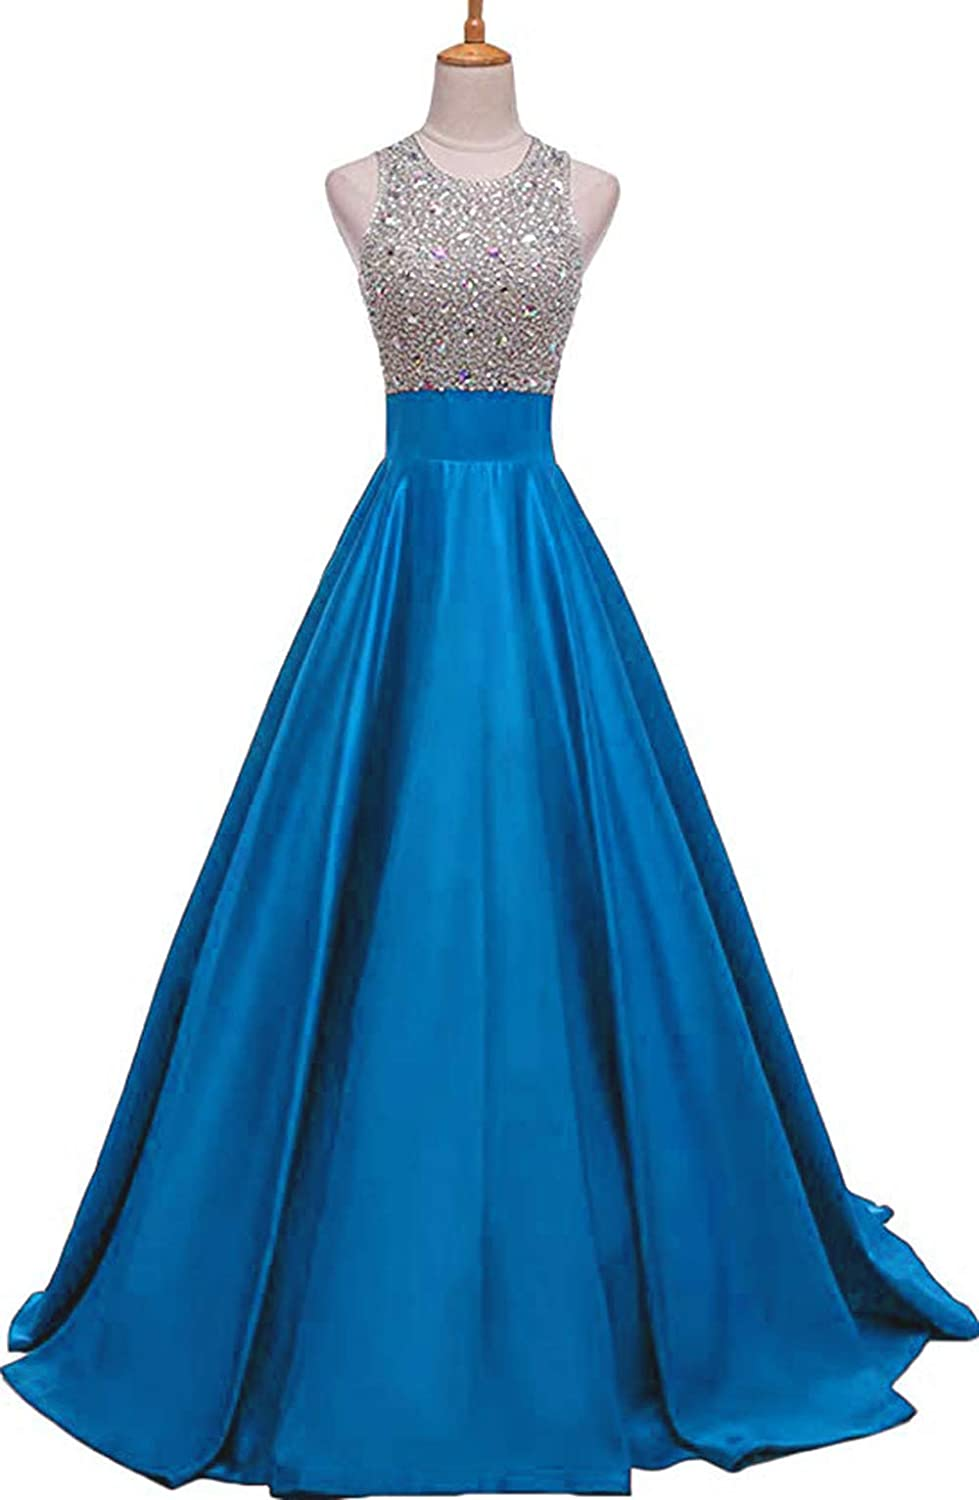 Womens Beaded Backless Prom Dresses Long 2019 Satin A Line Formal Evening Ball Gowns with Pockets